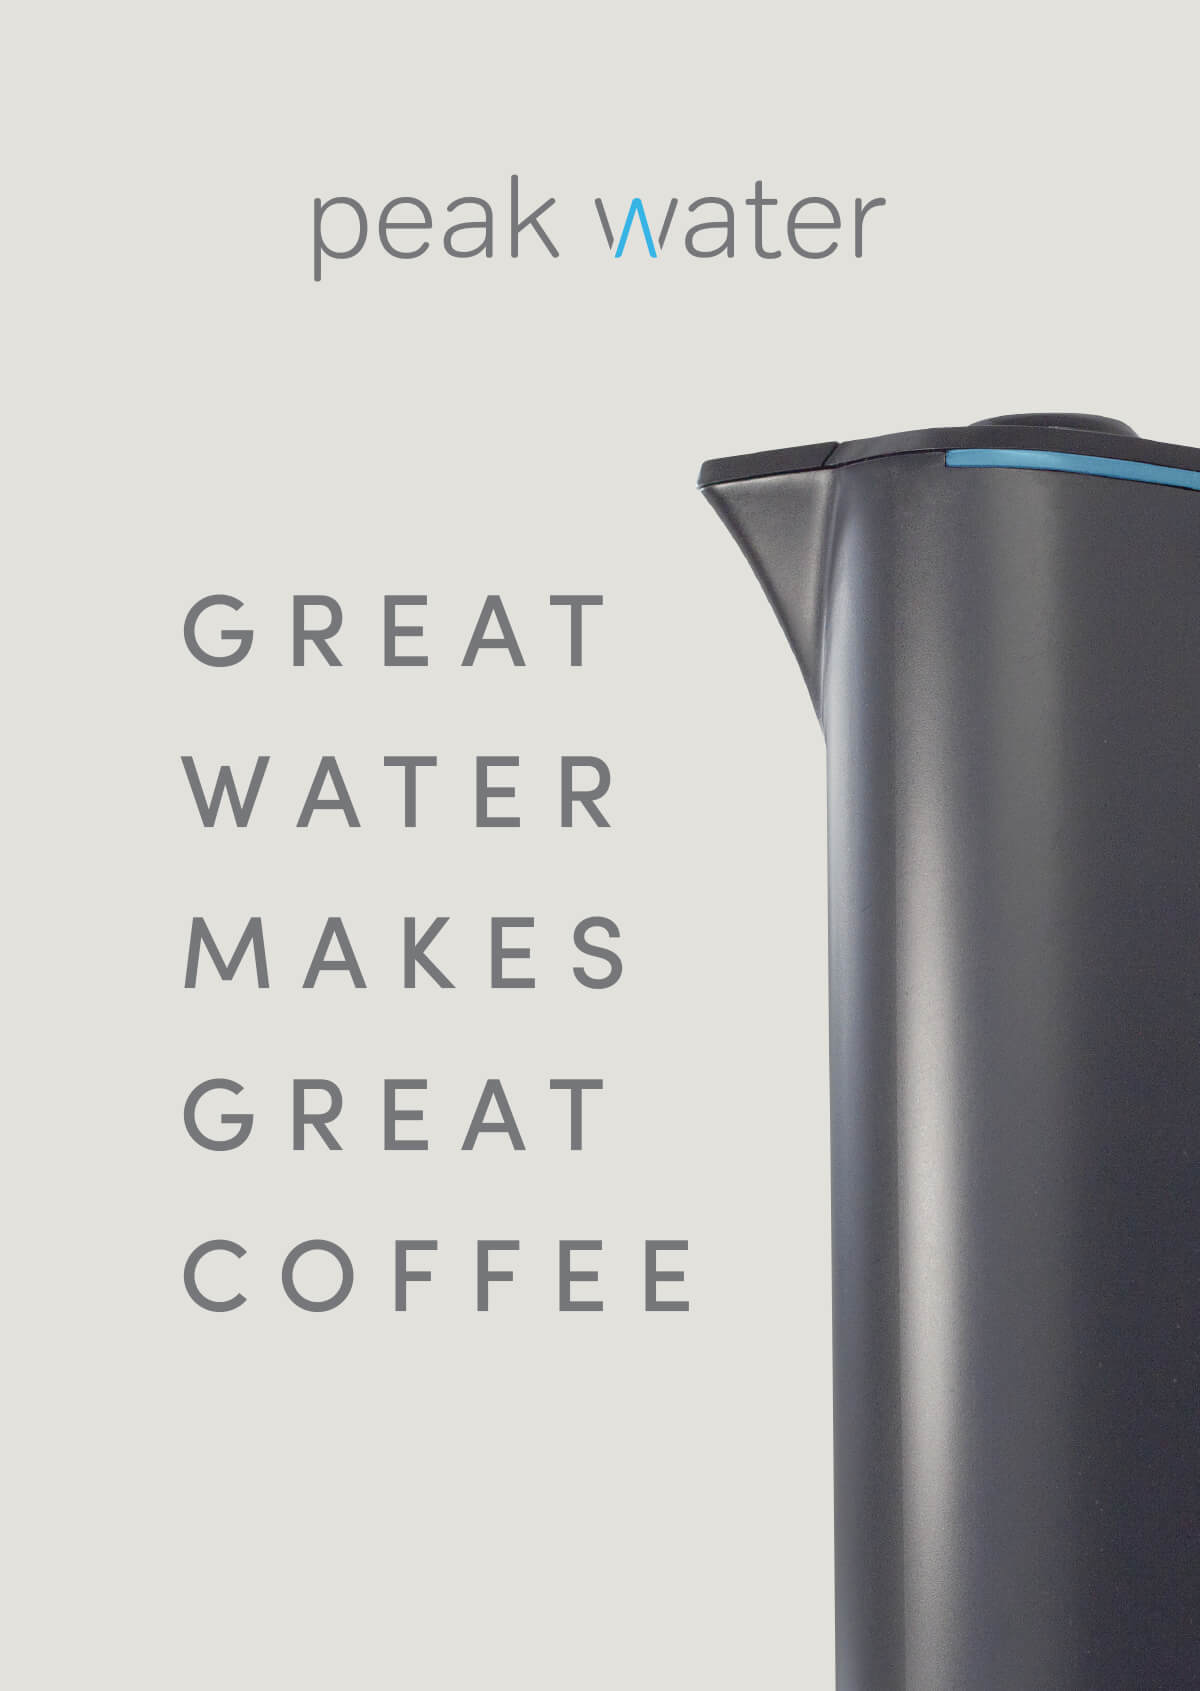 Peak Water postcard with completed tagline